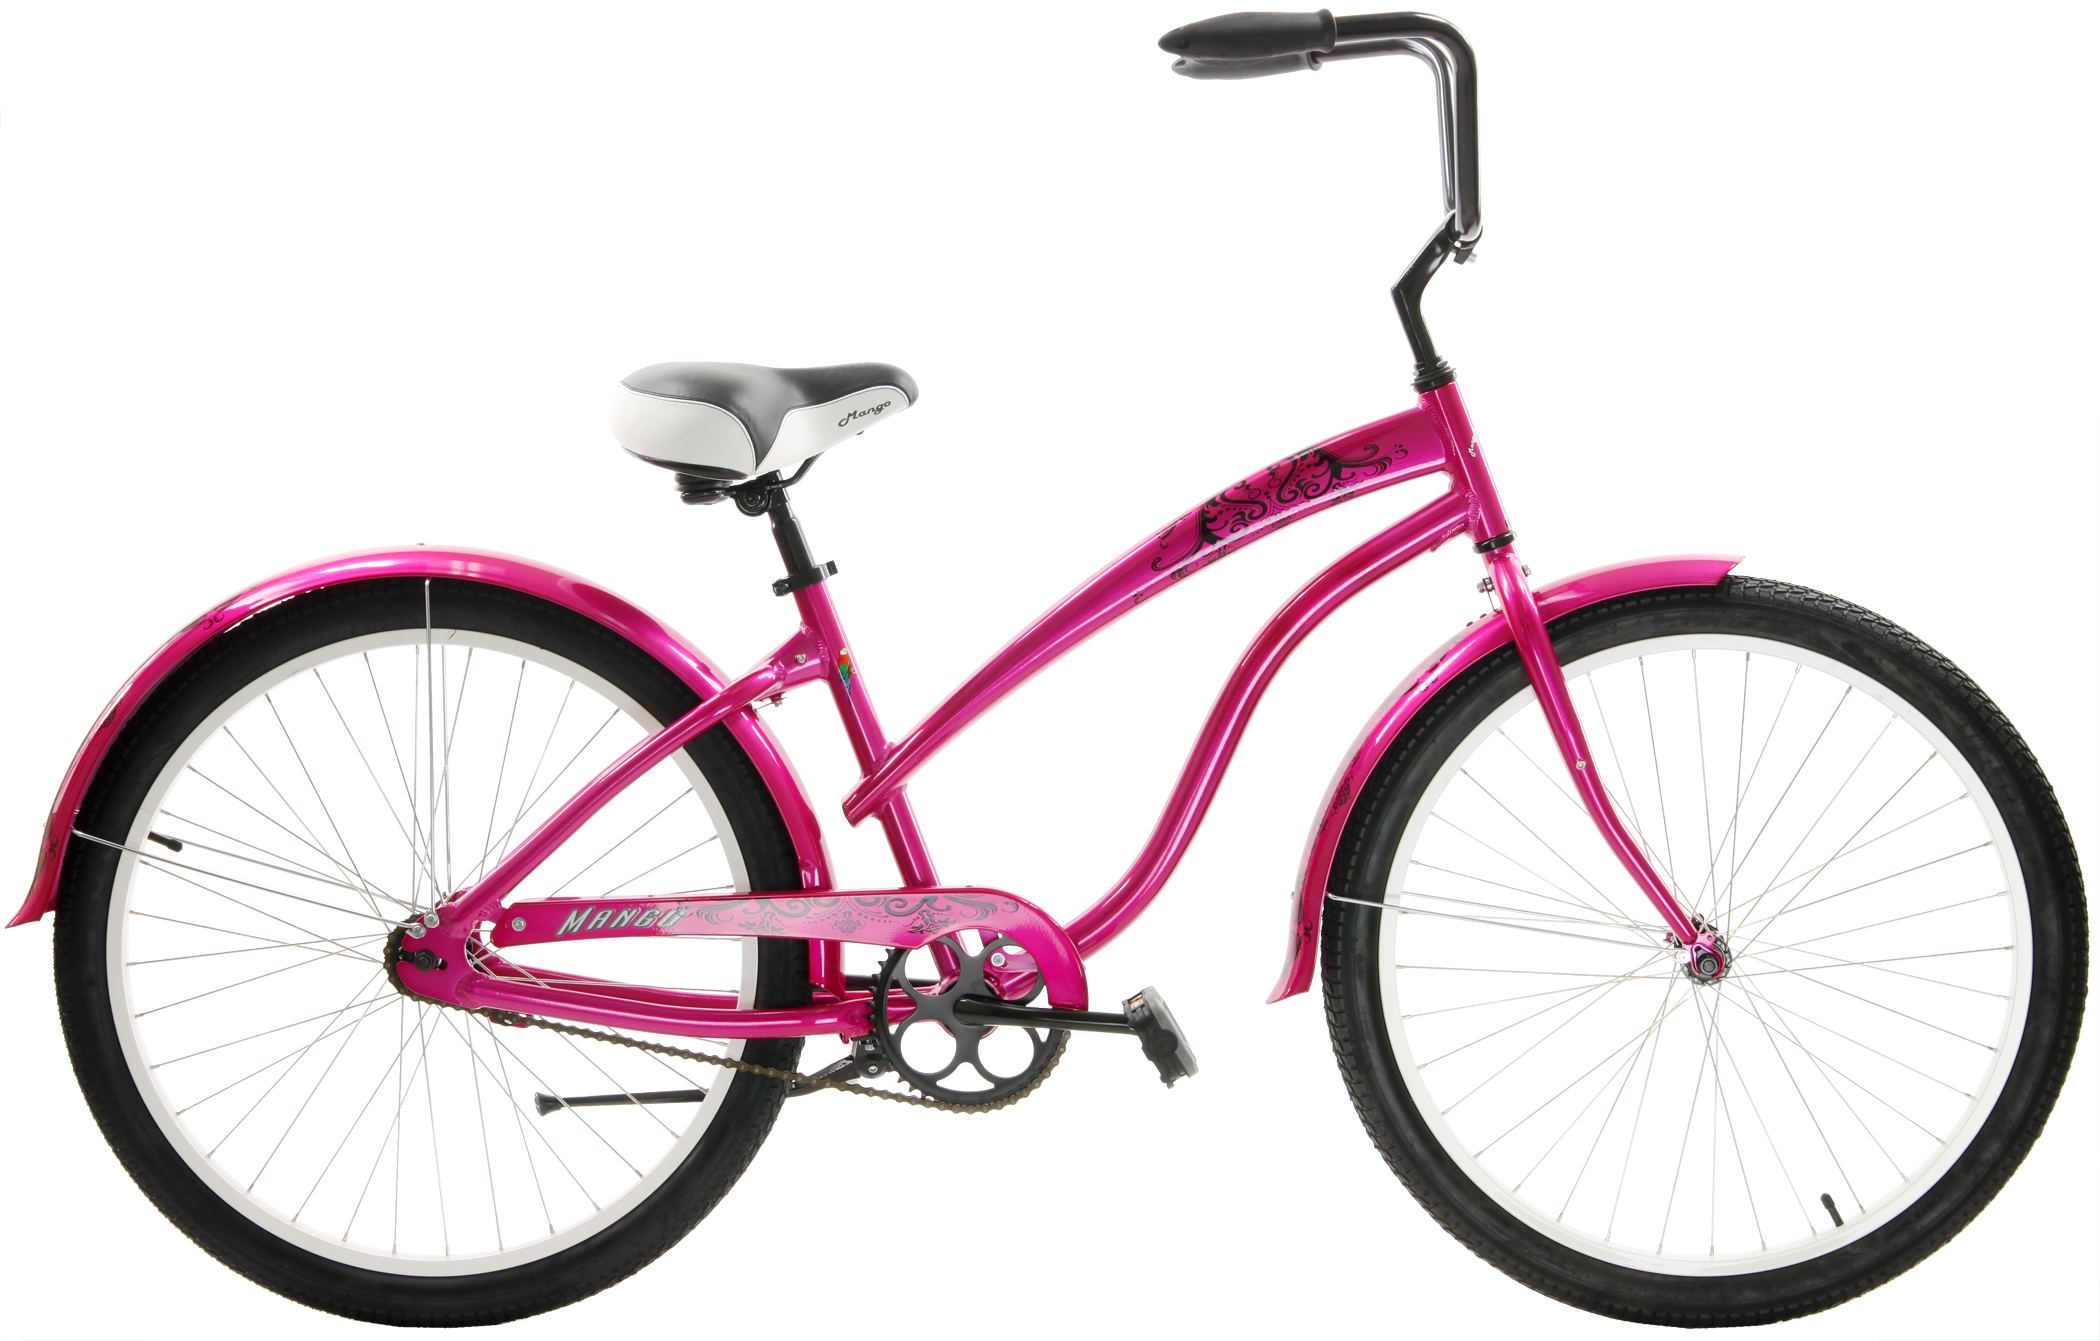 2100x1341 Save Up To 60% Off Mango Parrot 1 Speed Custom Cruisers